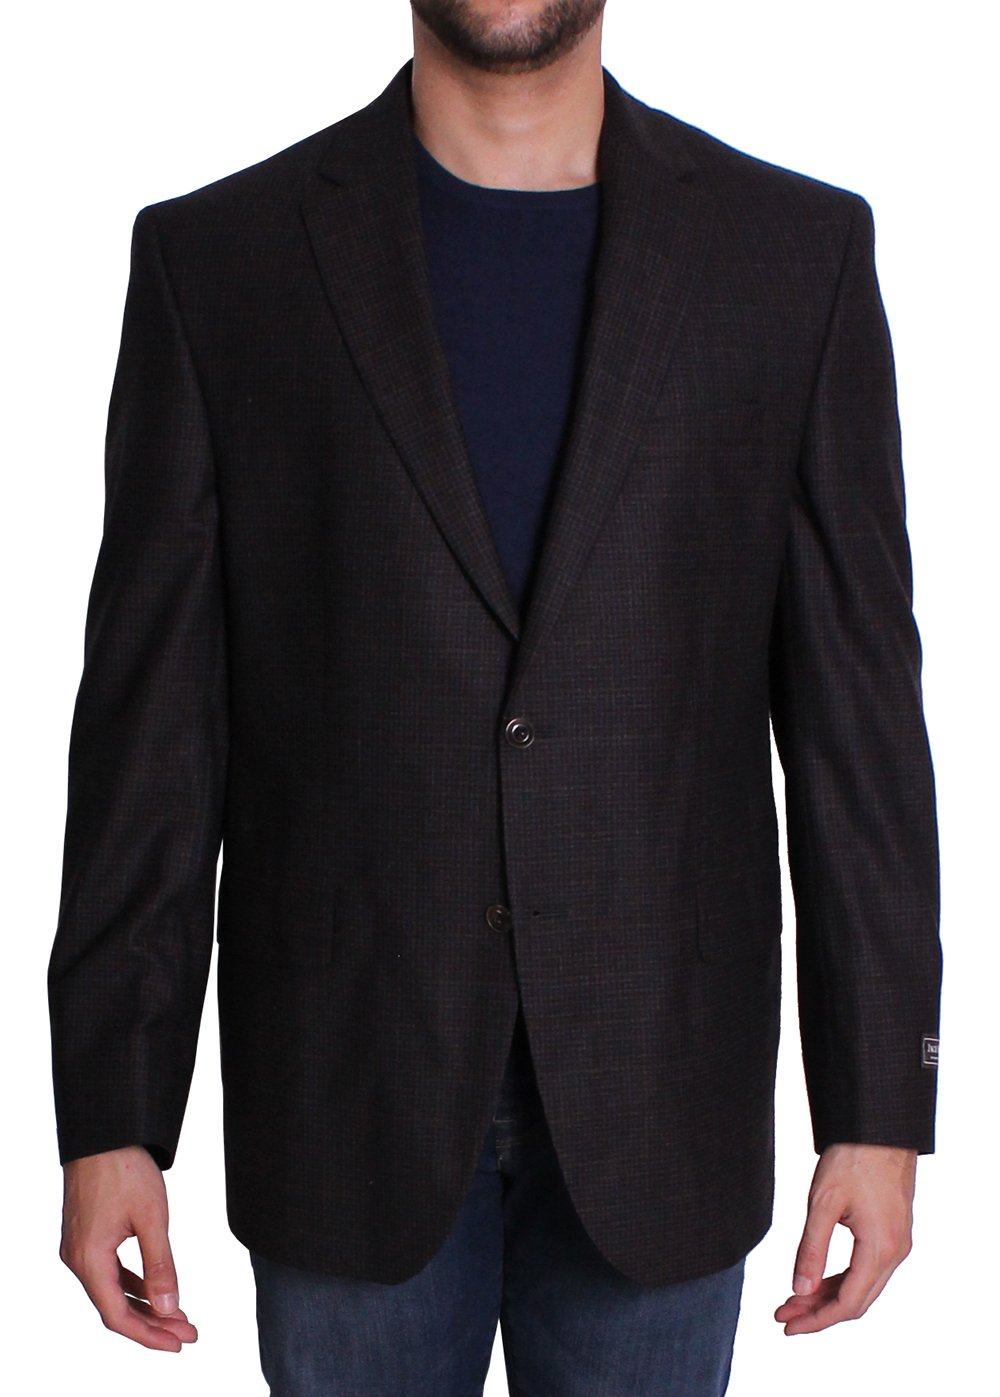 Jack Victor Sportcoat 40 As Shown